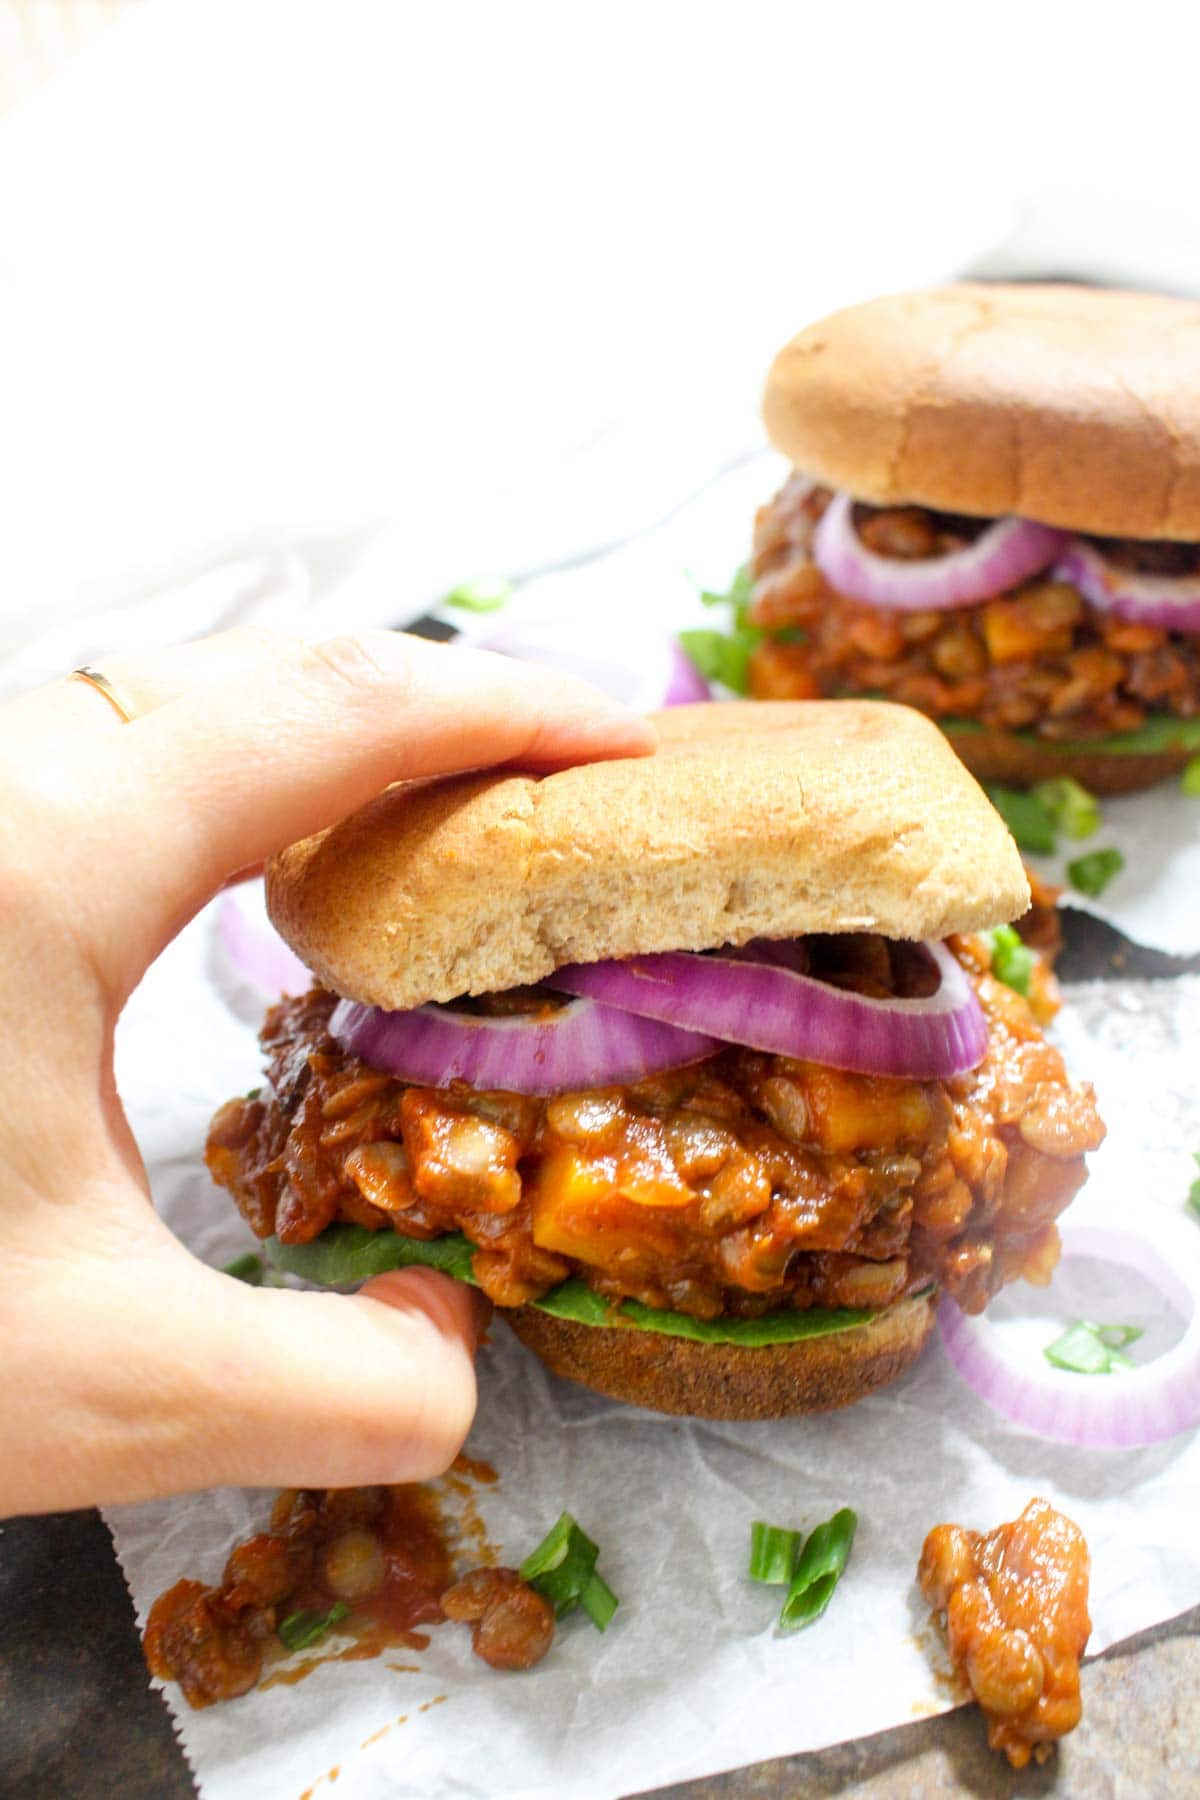 These Pumpkin Sloppy Joes recipe has a killer homemade sauce that is sweet, tangy, and perfectly tomatoe-y. They are an easy, gluten free, and vegan weeknight dinner. The addition of pumpkin makes them perfect for fall! | Catching Seeds